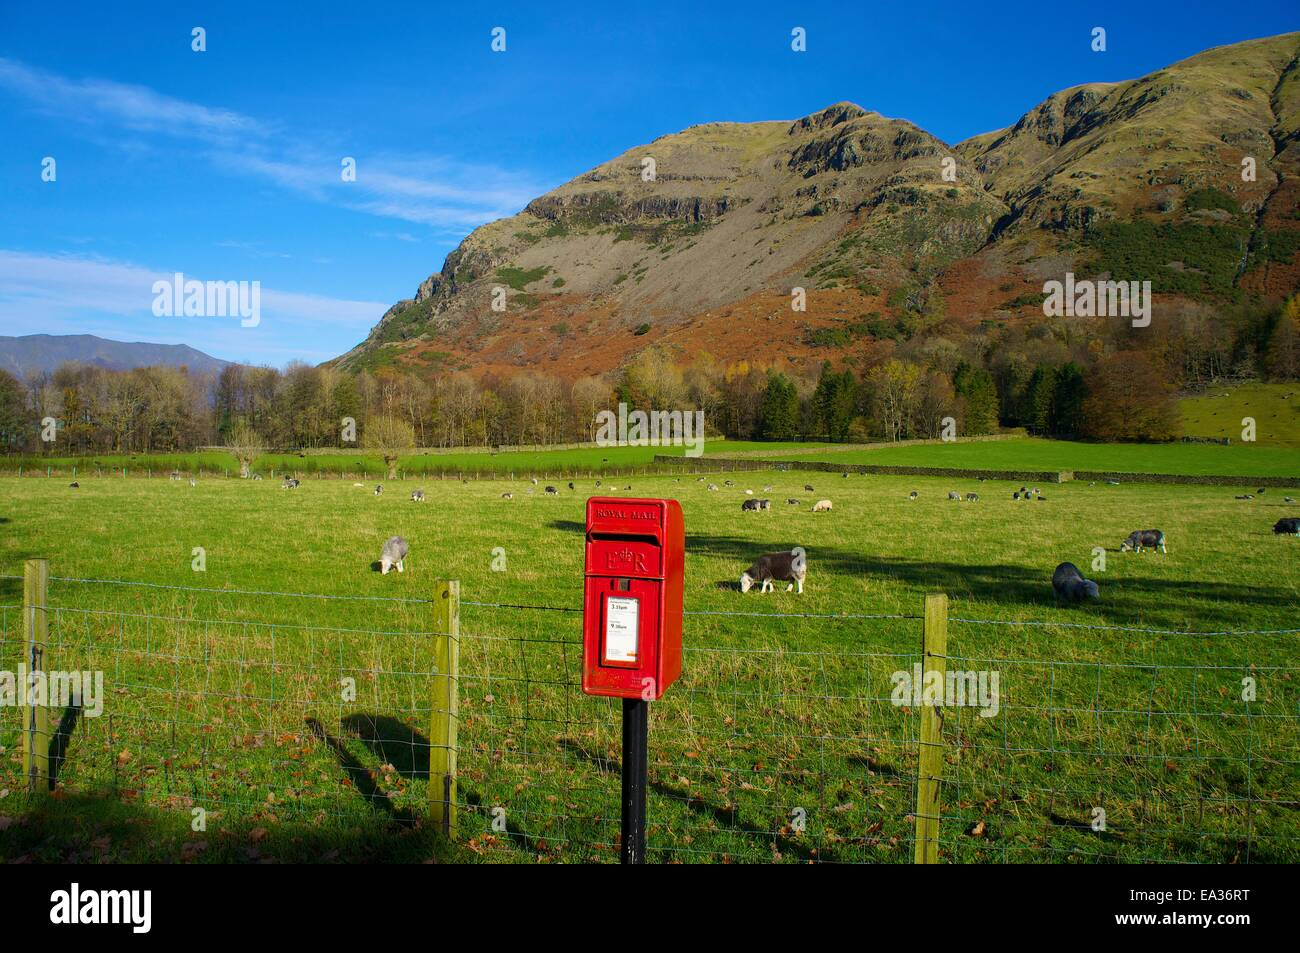 Red post box on a pole in St. John's in the Vale, Lake District National Park, Cumbria, England, UK. - Stock Image